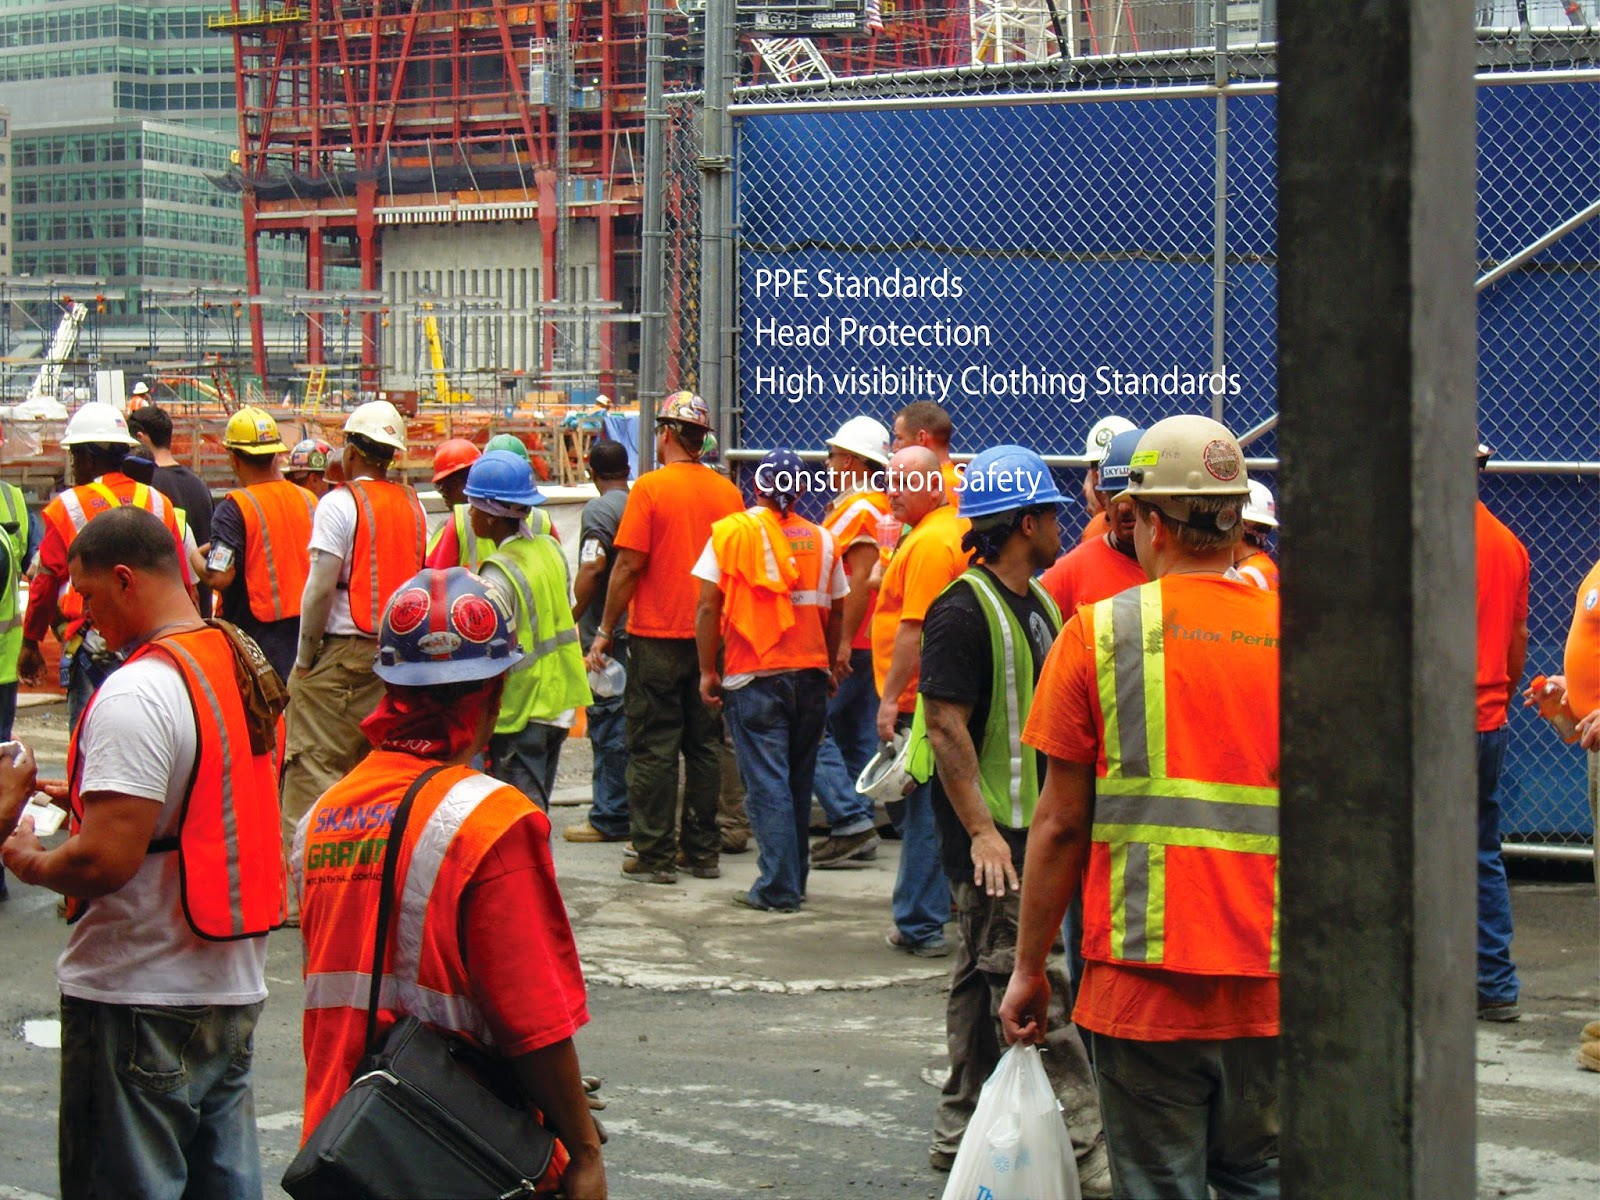 Construction workers wearing PPE equipment